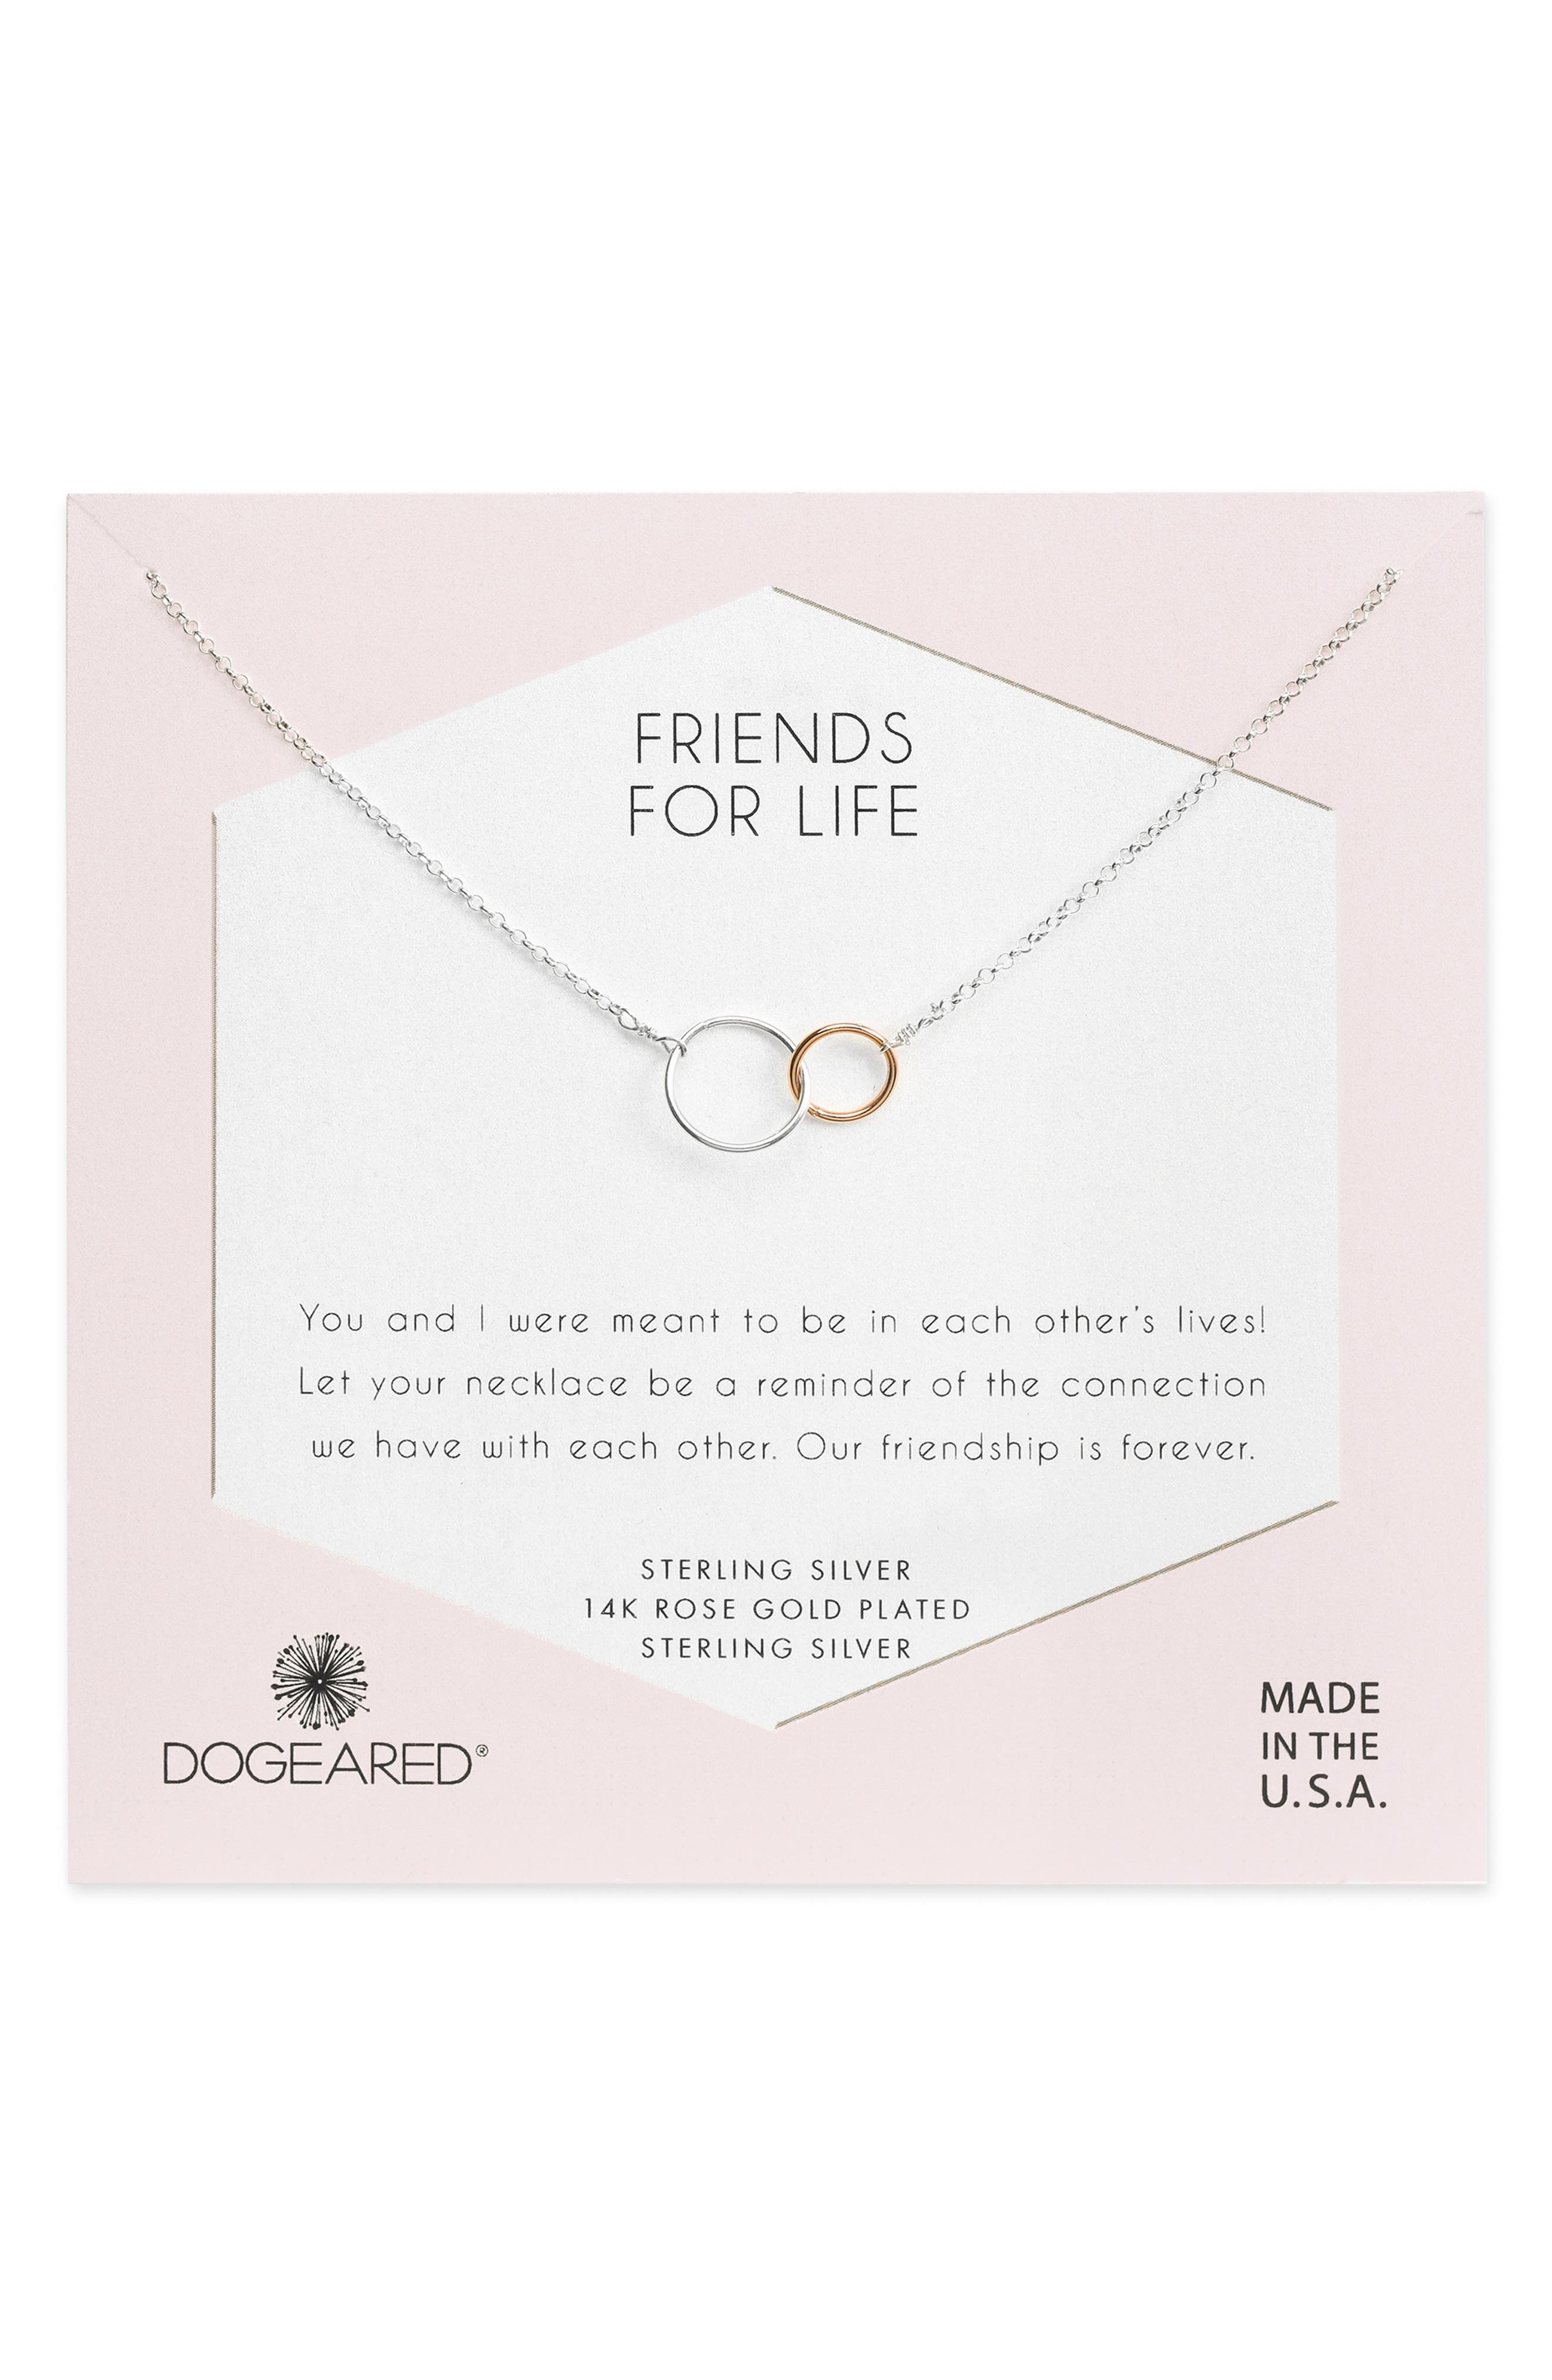 Friends for Life Necklace,                             Main thumbnail 1, color,